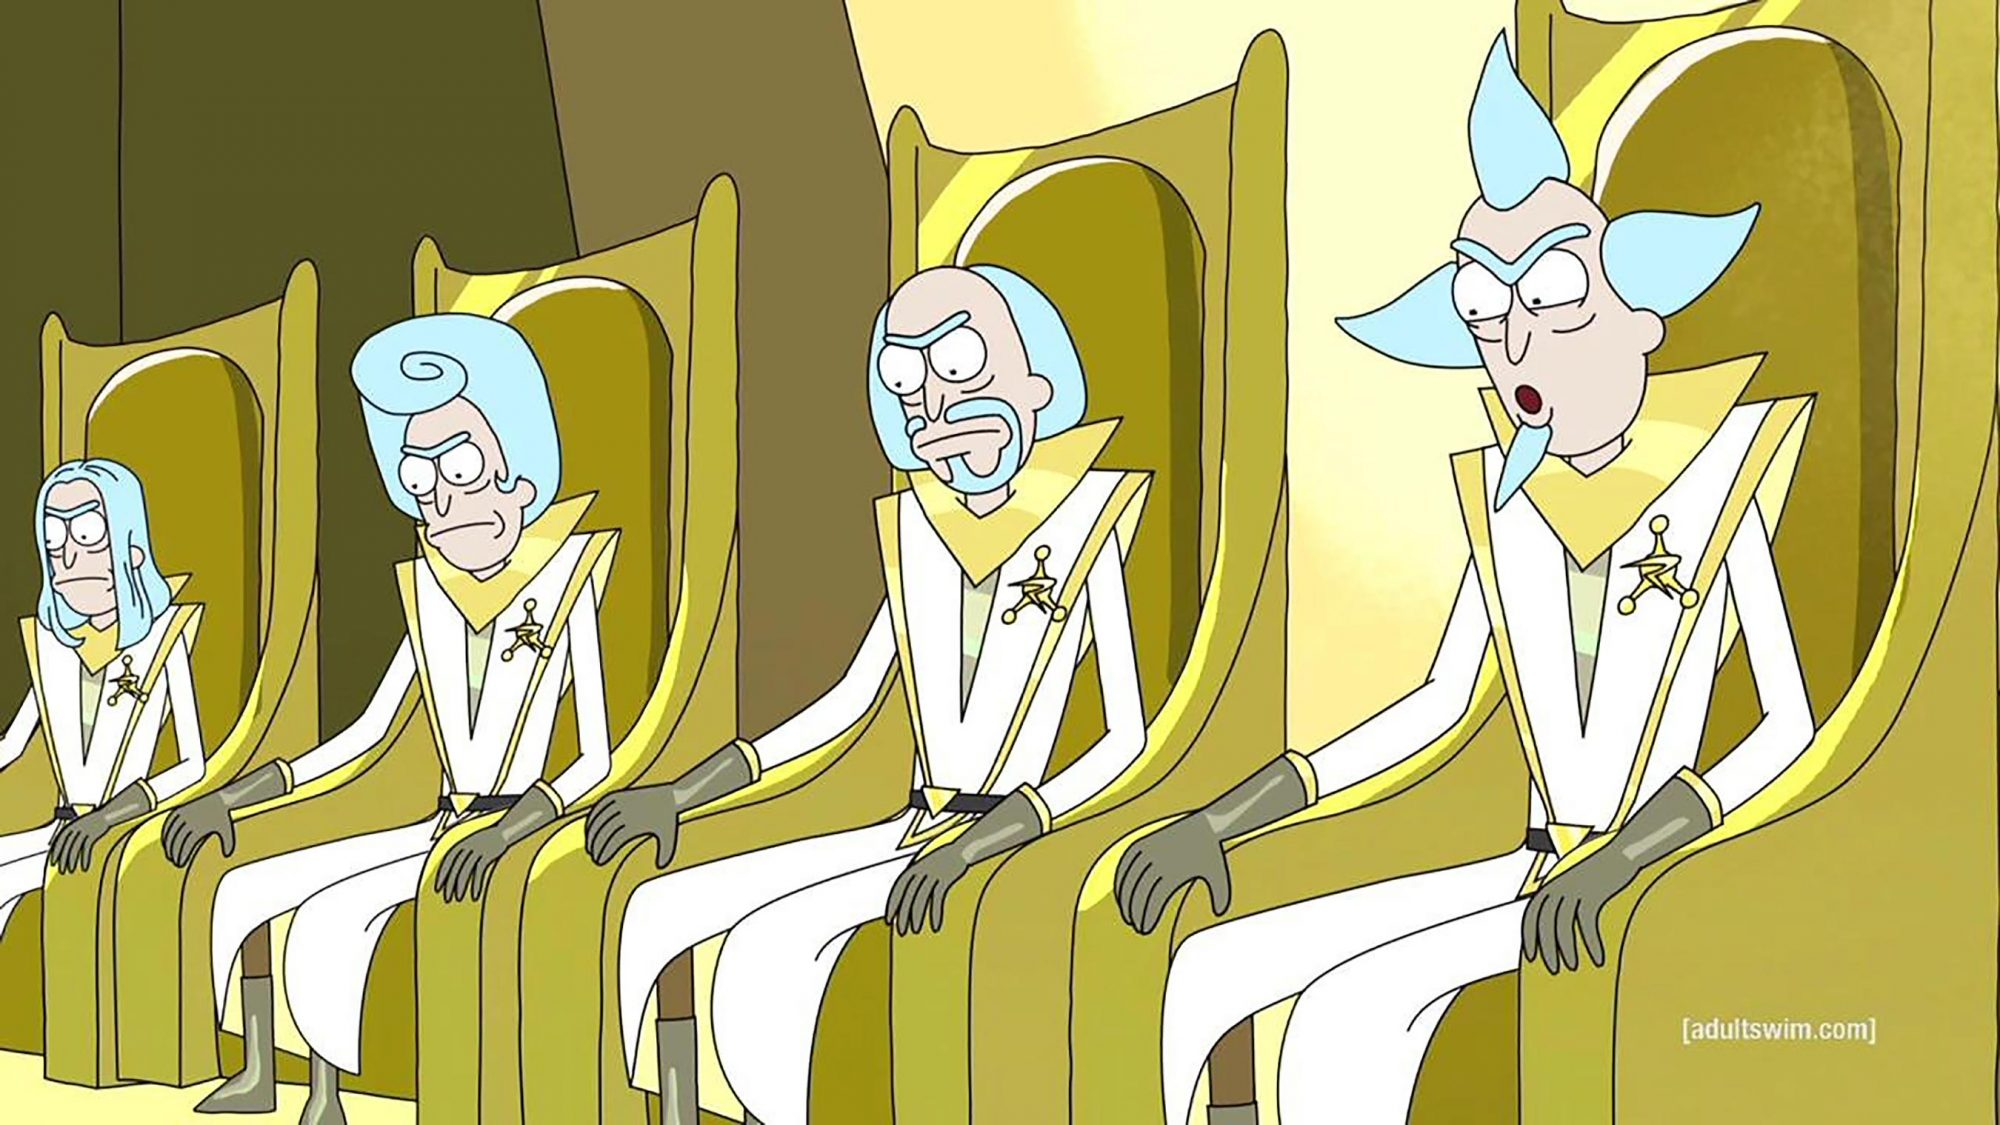 Ricky and Morty - Trans Dimensional Council of Ricks (Season 1, Episode 10)